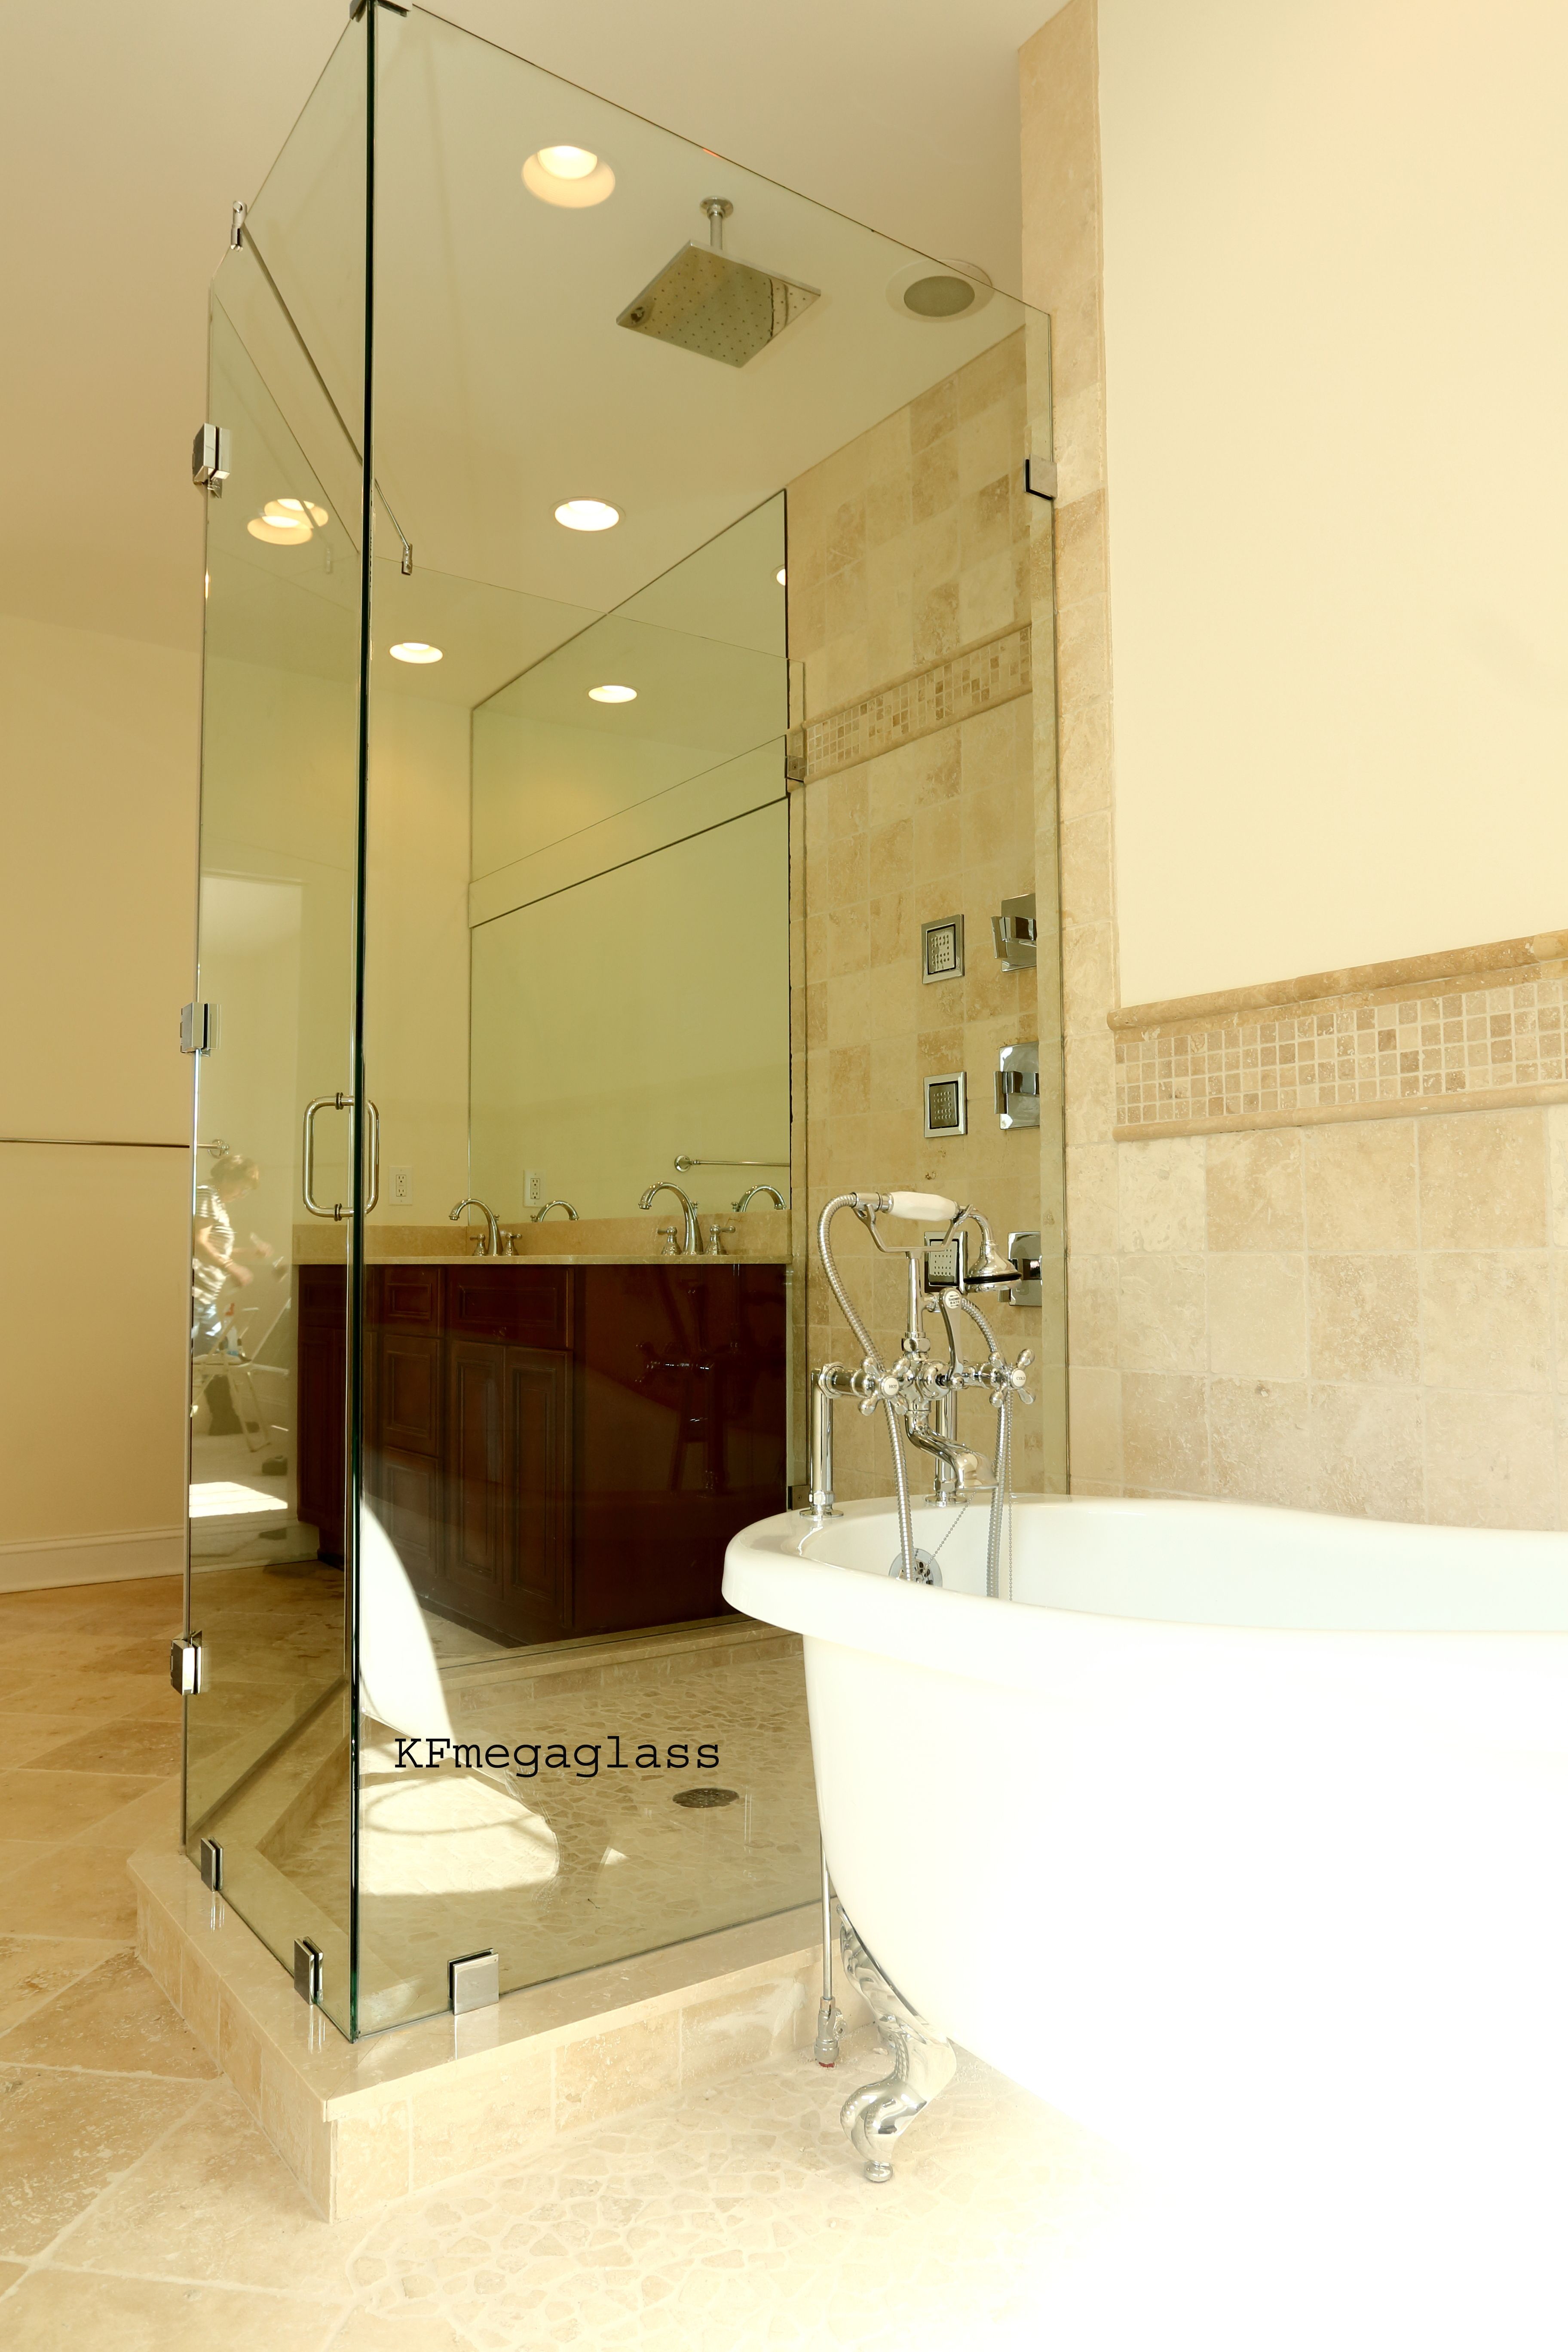 Kfmegaglass Is The Premier Company For Design Your New Shower Door New Construction Residenti Frameless Shower Doors Shower Doors Frameless Shower Enclosures